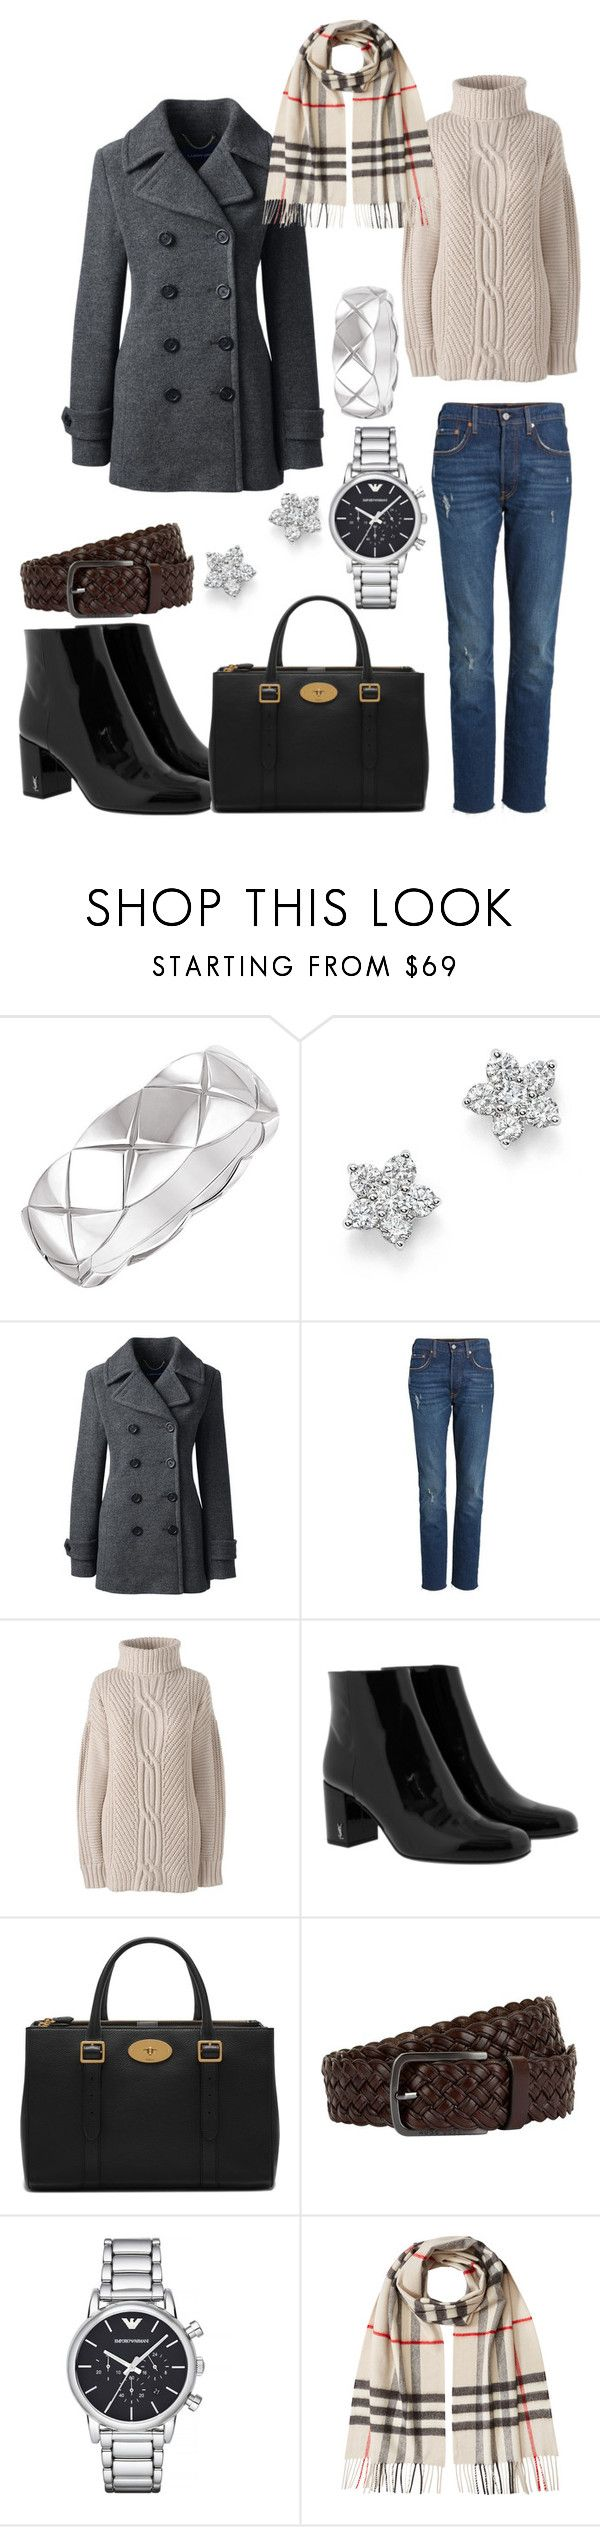 """""""OUTFIT OF THE DAY"""" by andreamartin24601 ❤ liked on Polyvore featuring Chanel, Bloomingdale's, Lands' End, Levi's, Yves Saint Laurent, Mulberry, BOSS Hugo Boss, Emporio Armani, Burberry and plus size clothing"""